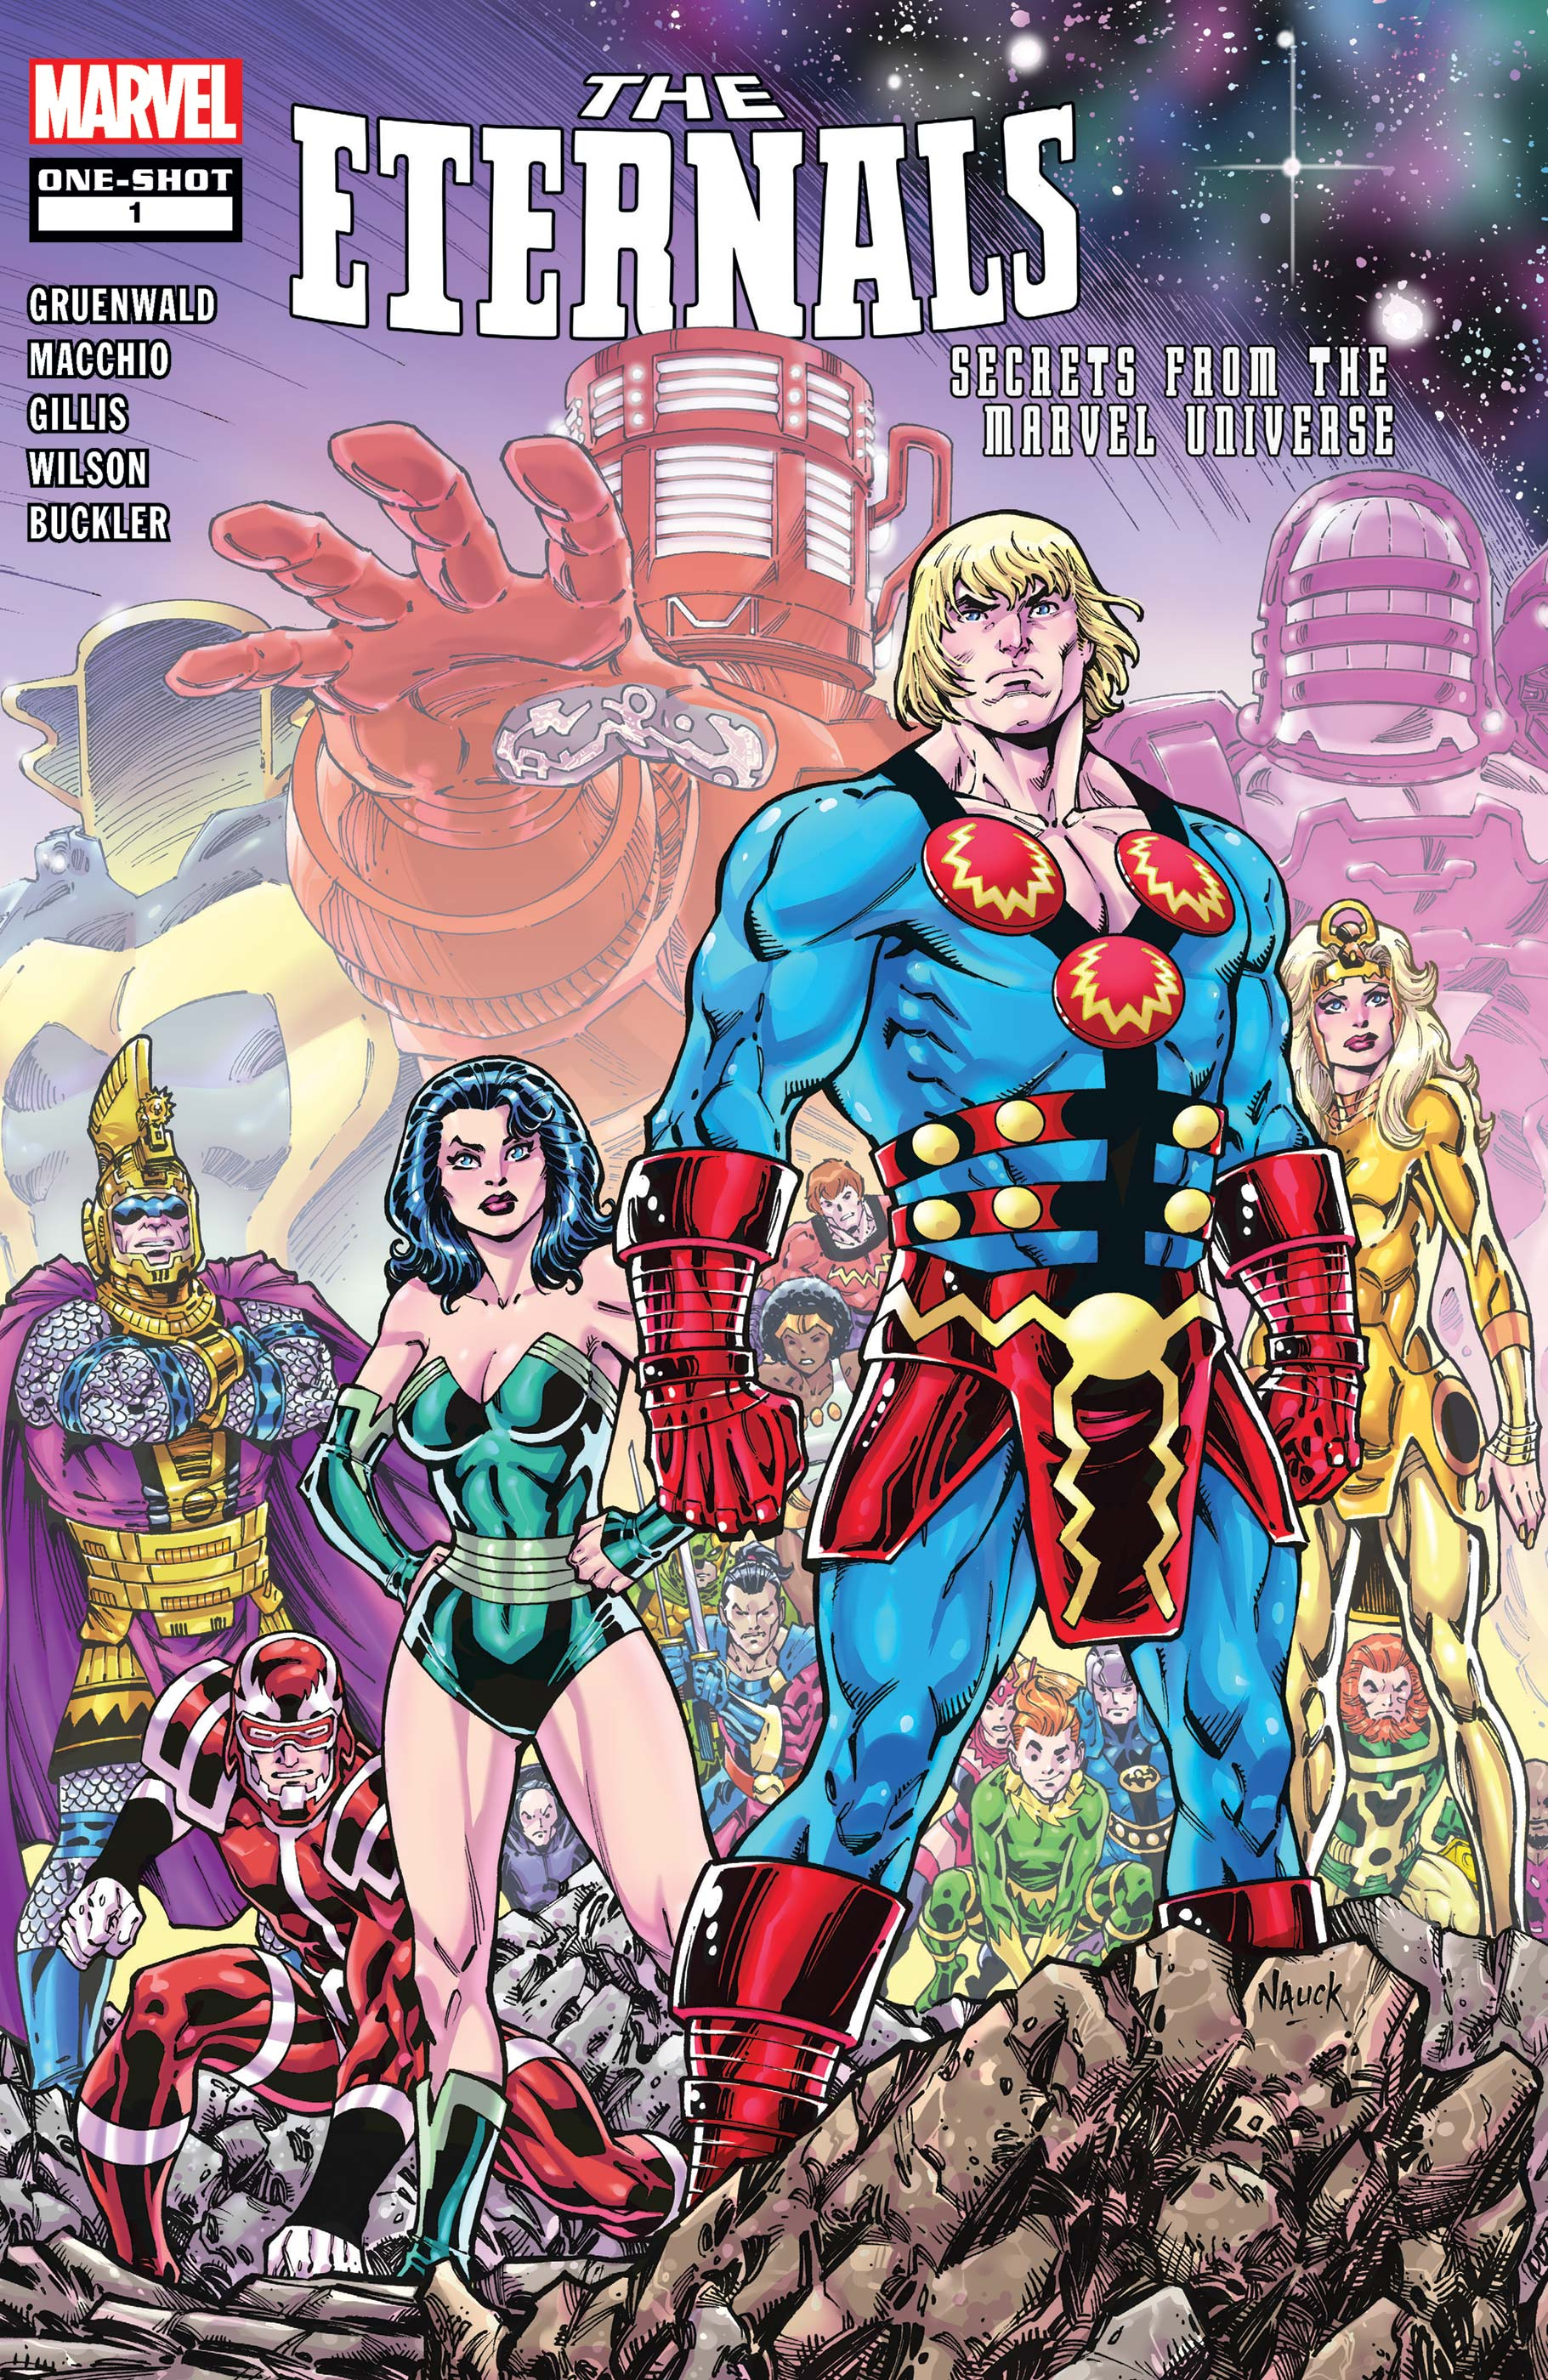 Marvel The Eternals